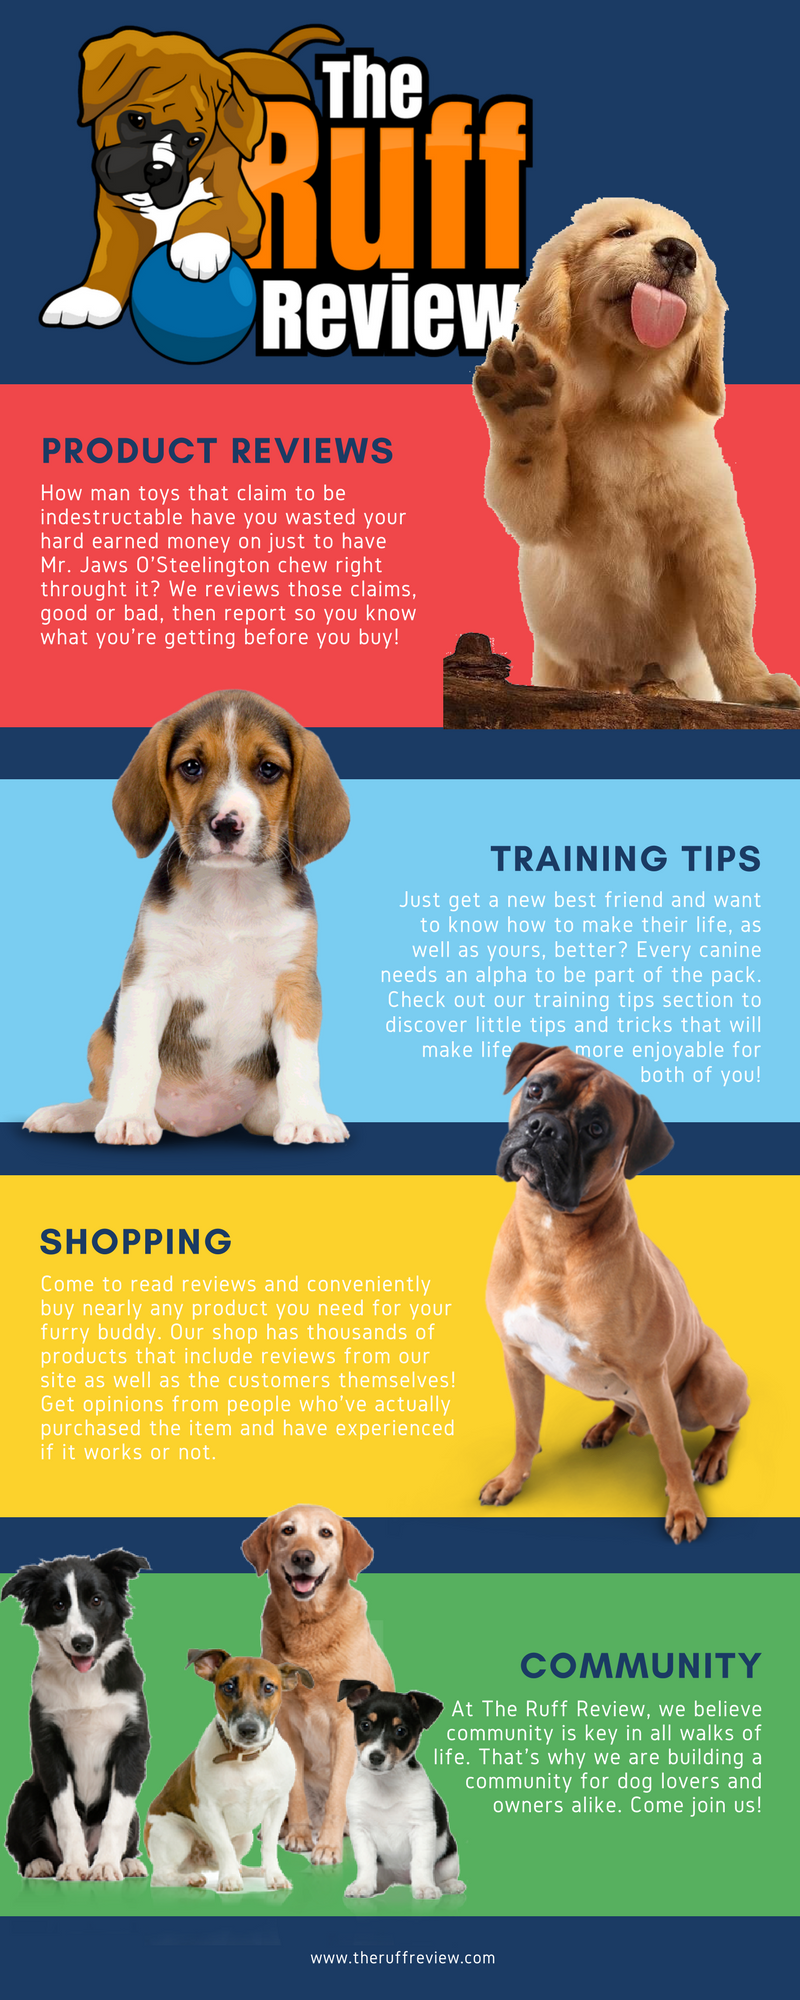 Dog Products Reviews Training Tutorials And Shopping All In One Place Dog Food Online Dog Joints Dogs